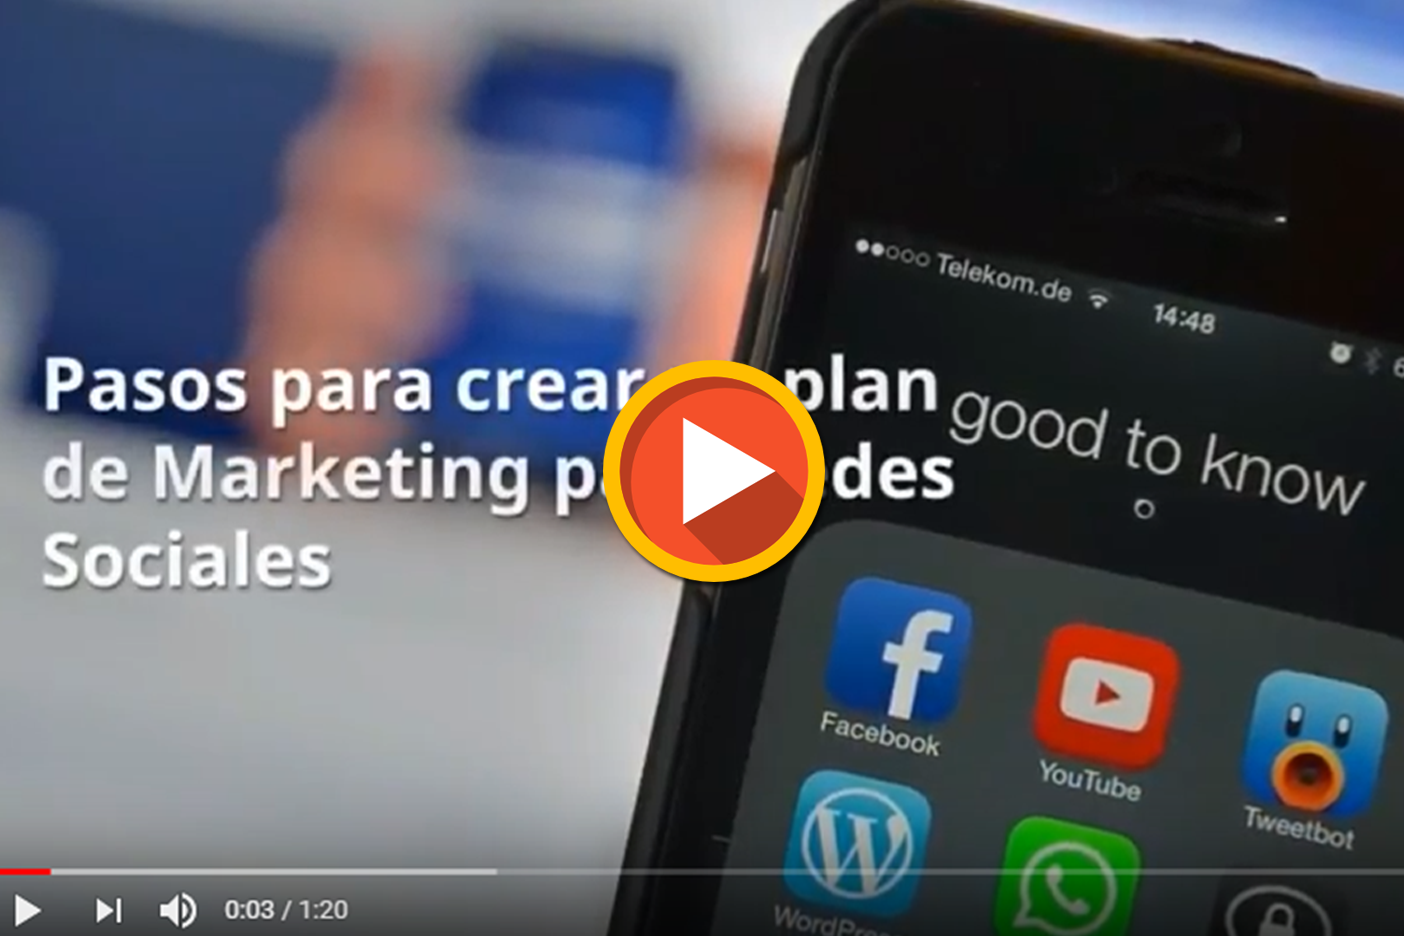 plan de Marketing  para Redes Sociales